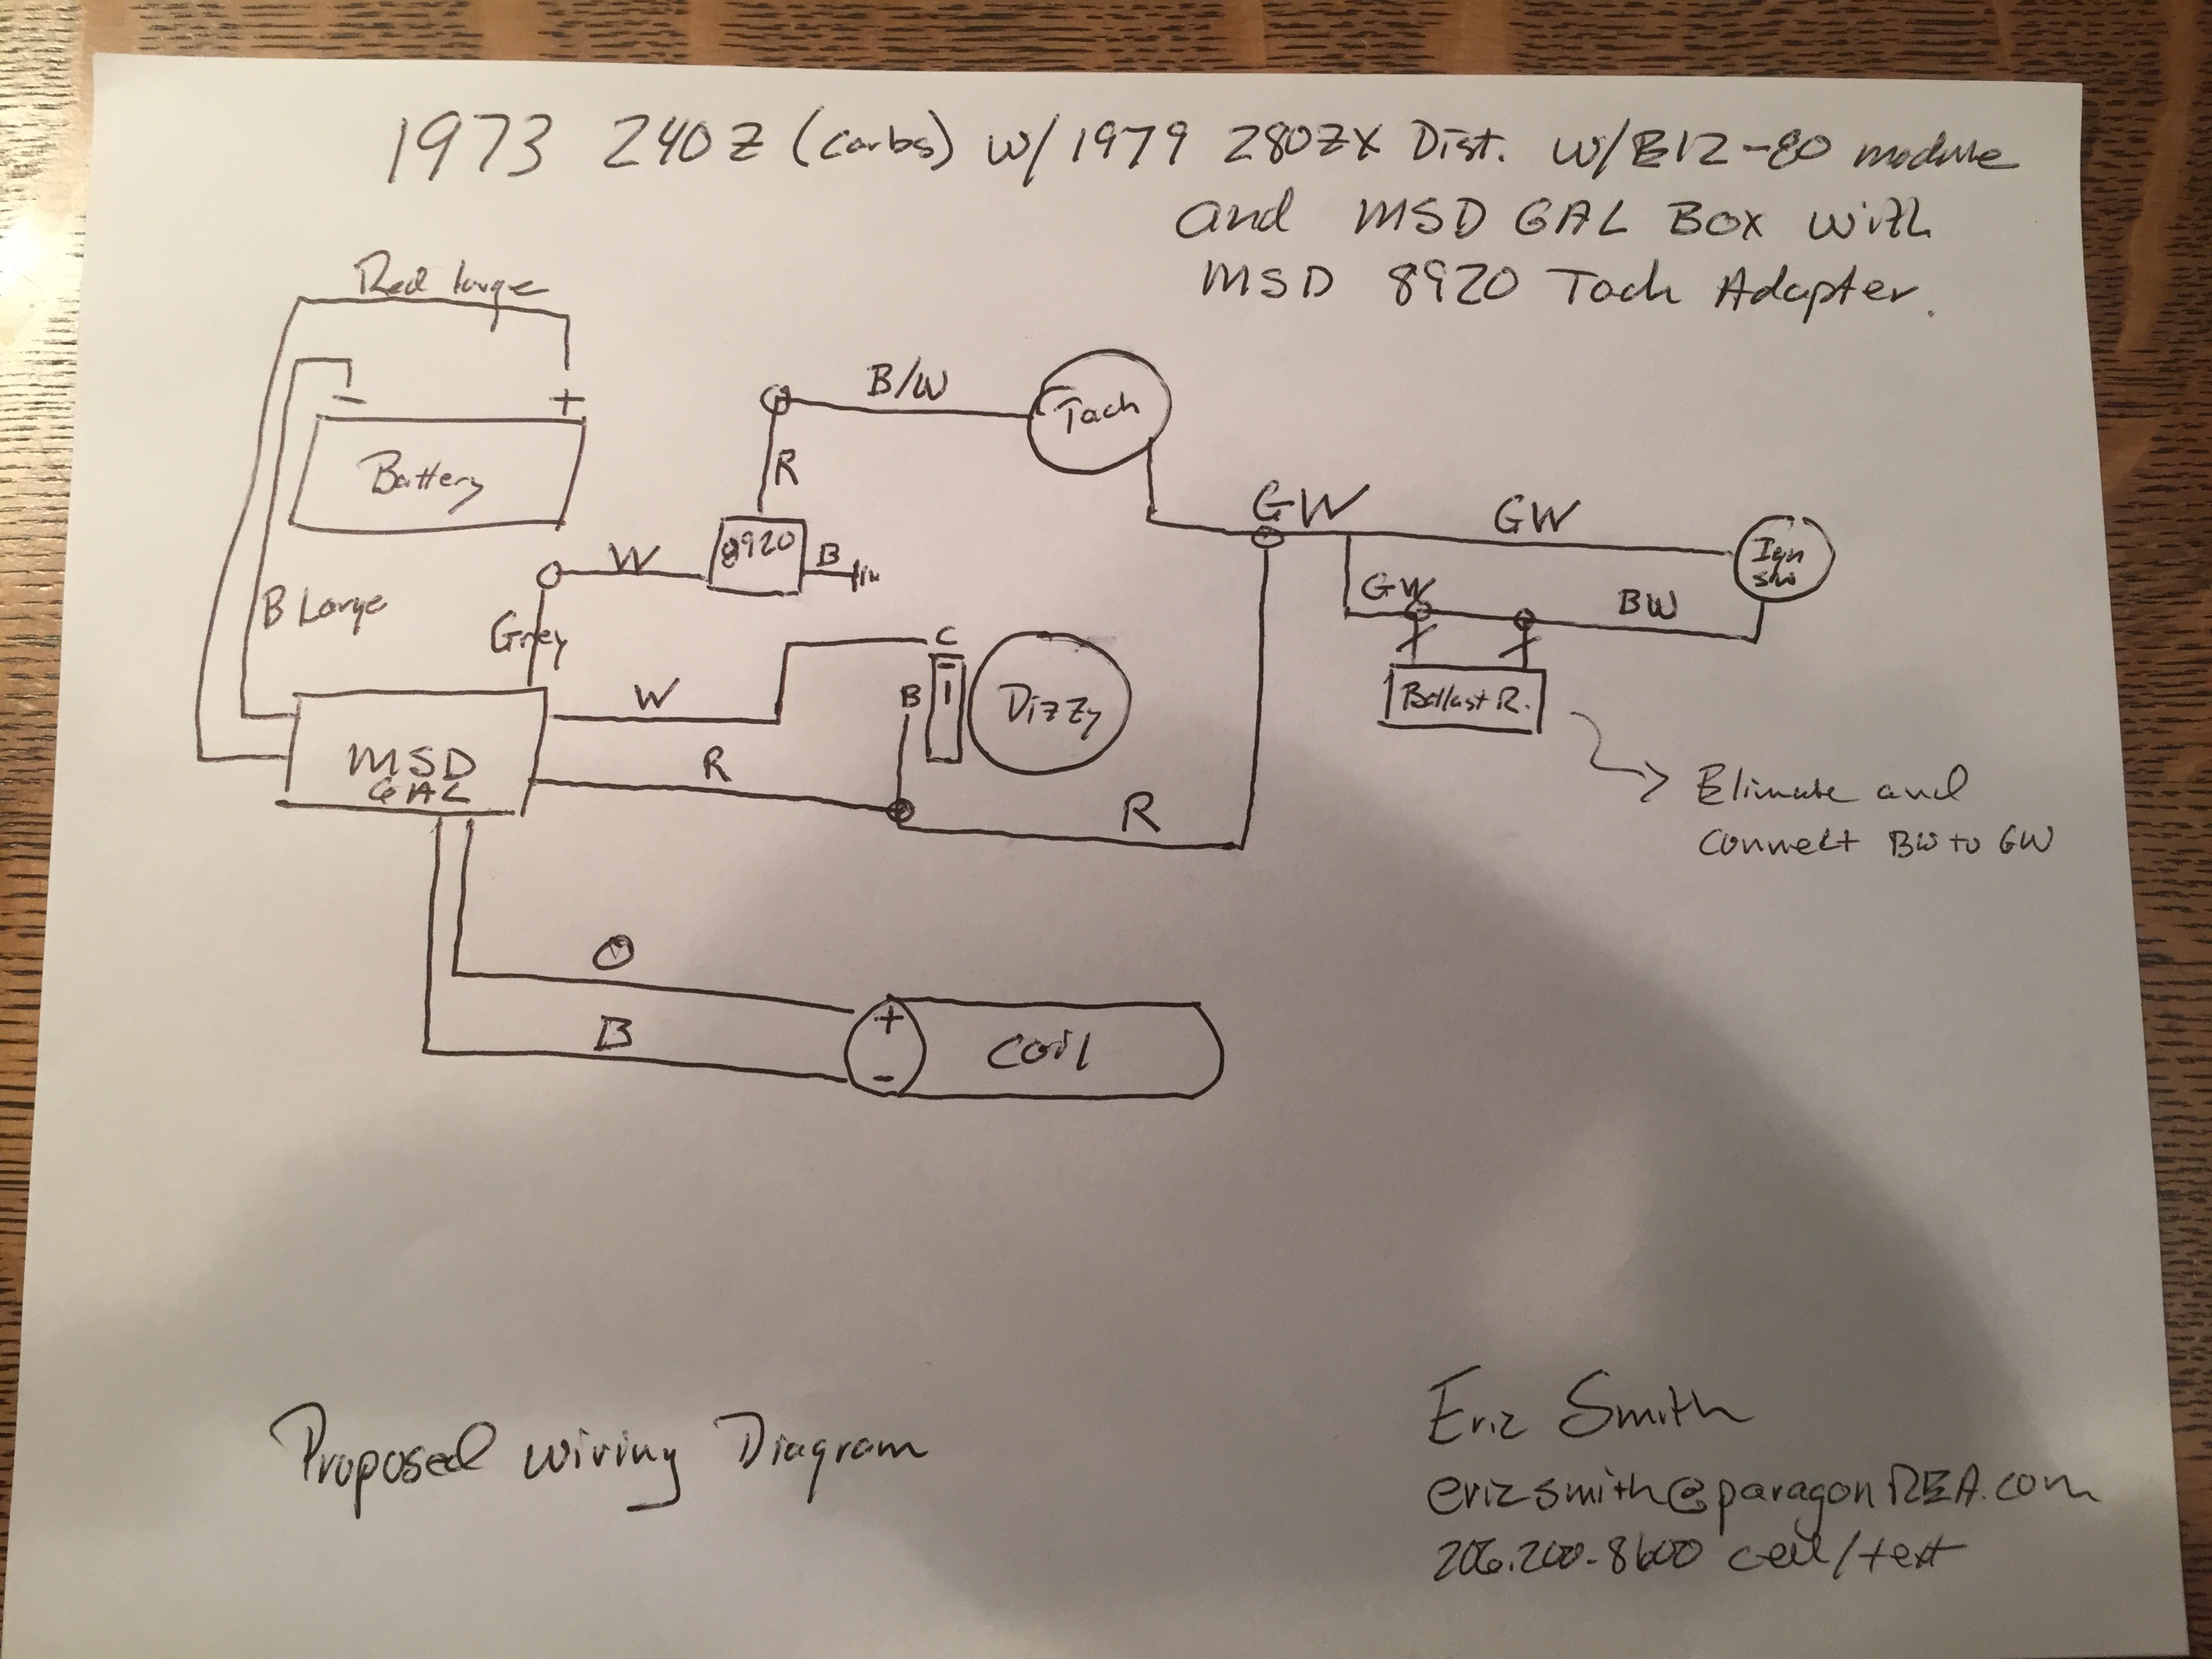 57fc89437ccd4_MSDwiringdiagram.d46a1a1a23a5ab41be4ba49d3725f84b help 280zx e12 80 and msd 6al to a 240z electrical classic msd tach adapter 8920 wiring diagram at readyjetset.co